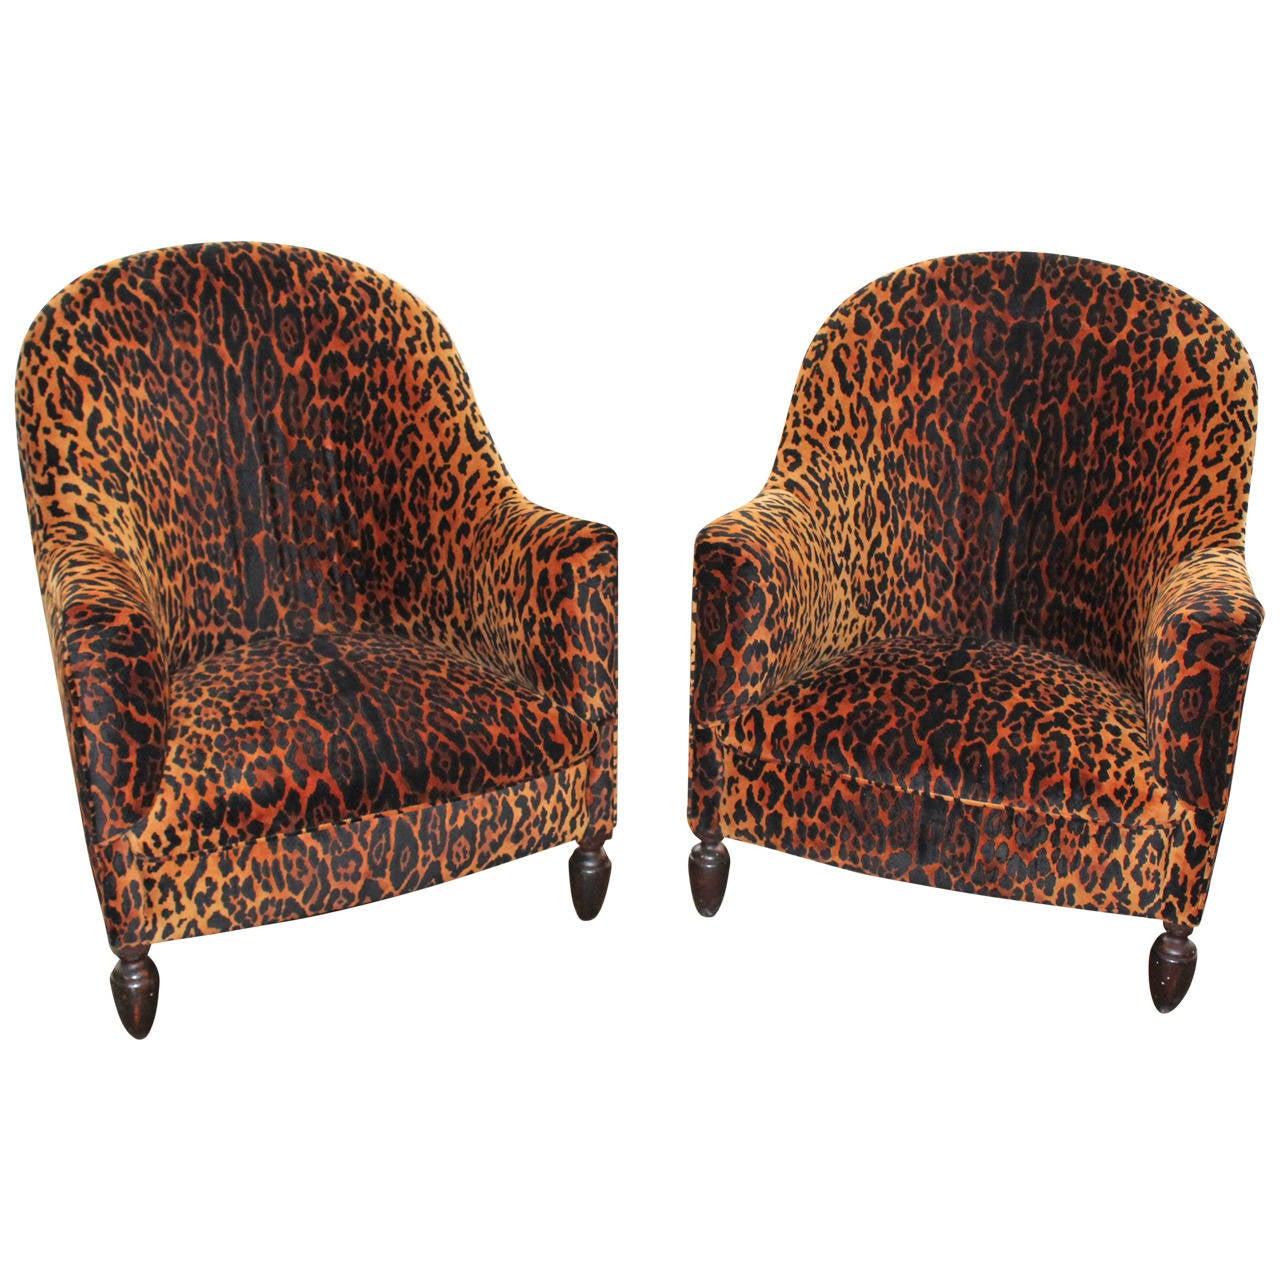 Vintage Club Chairs Vintage French Pair Of Leopard Club Chairs With Ottoman At